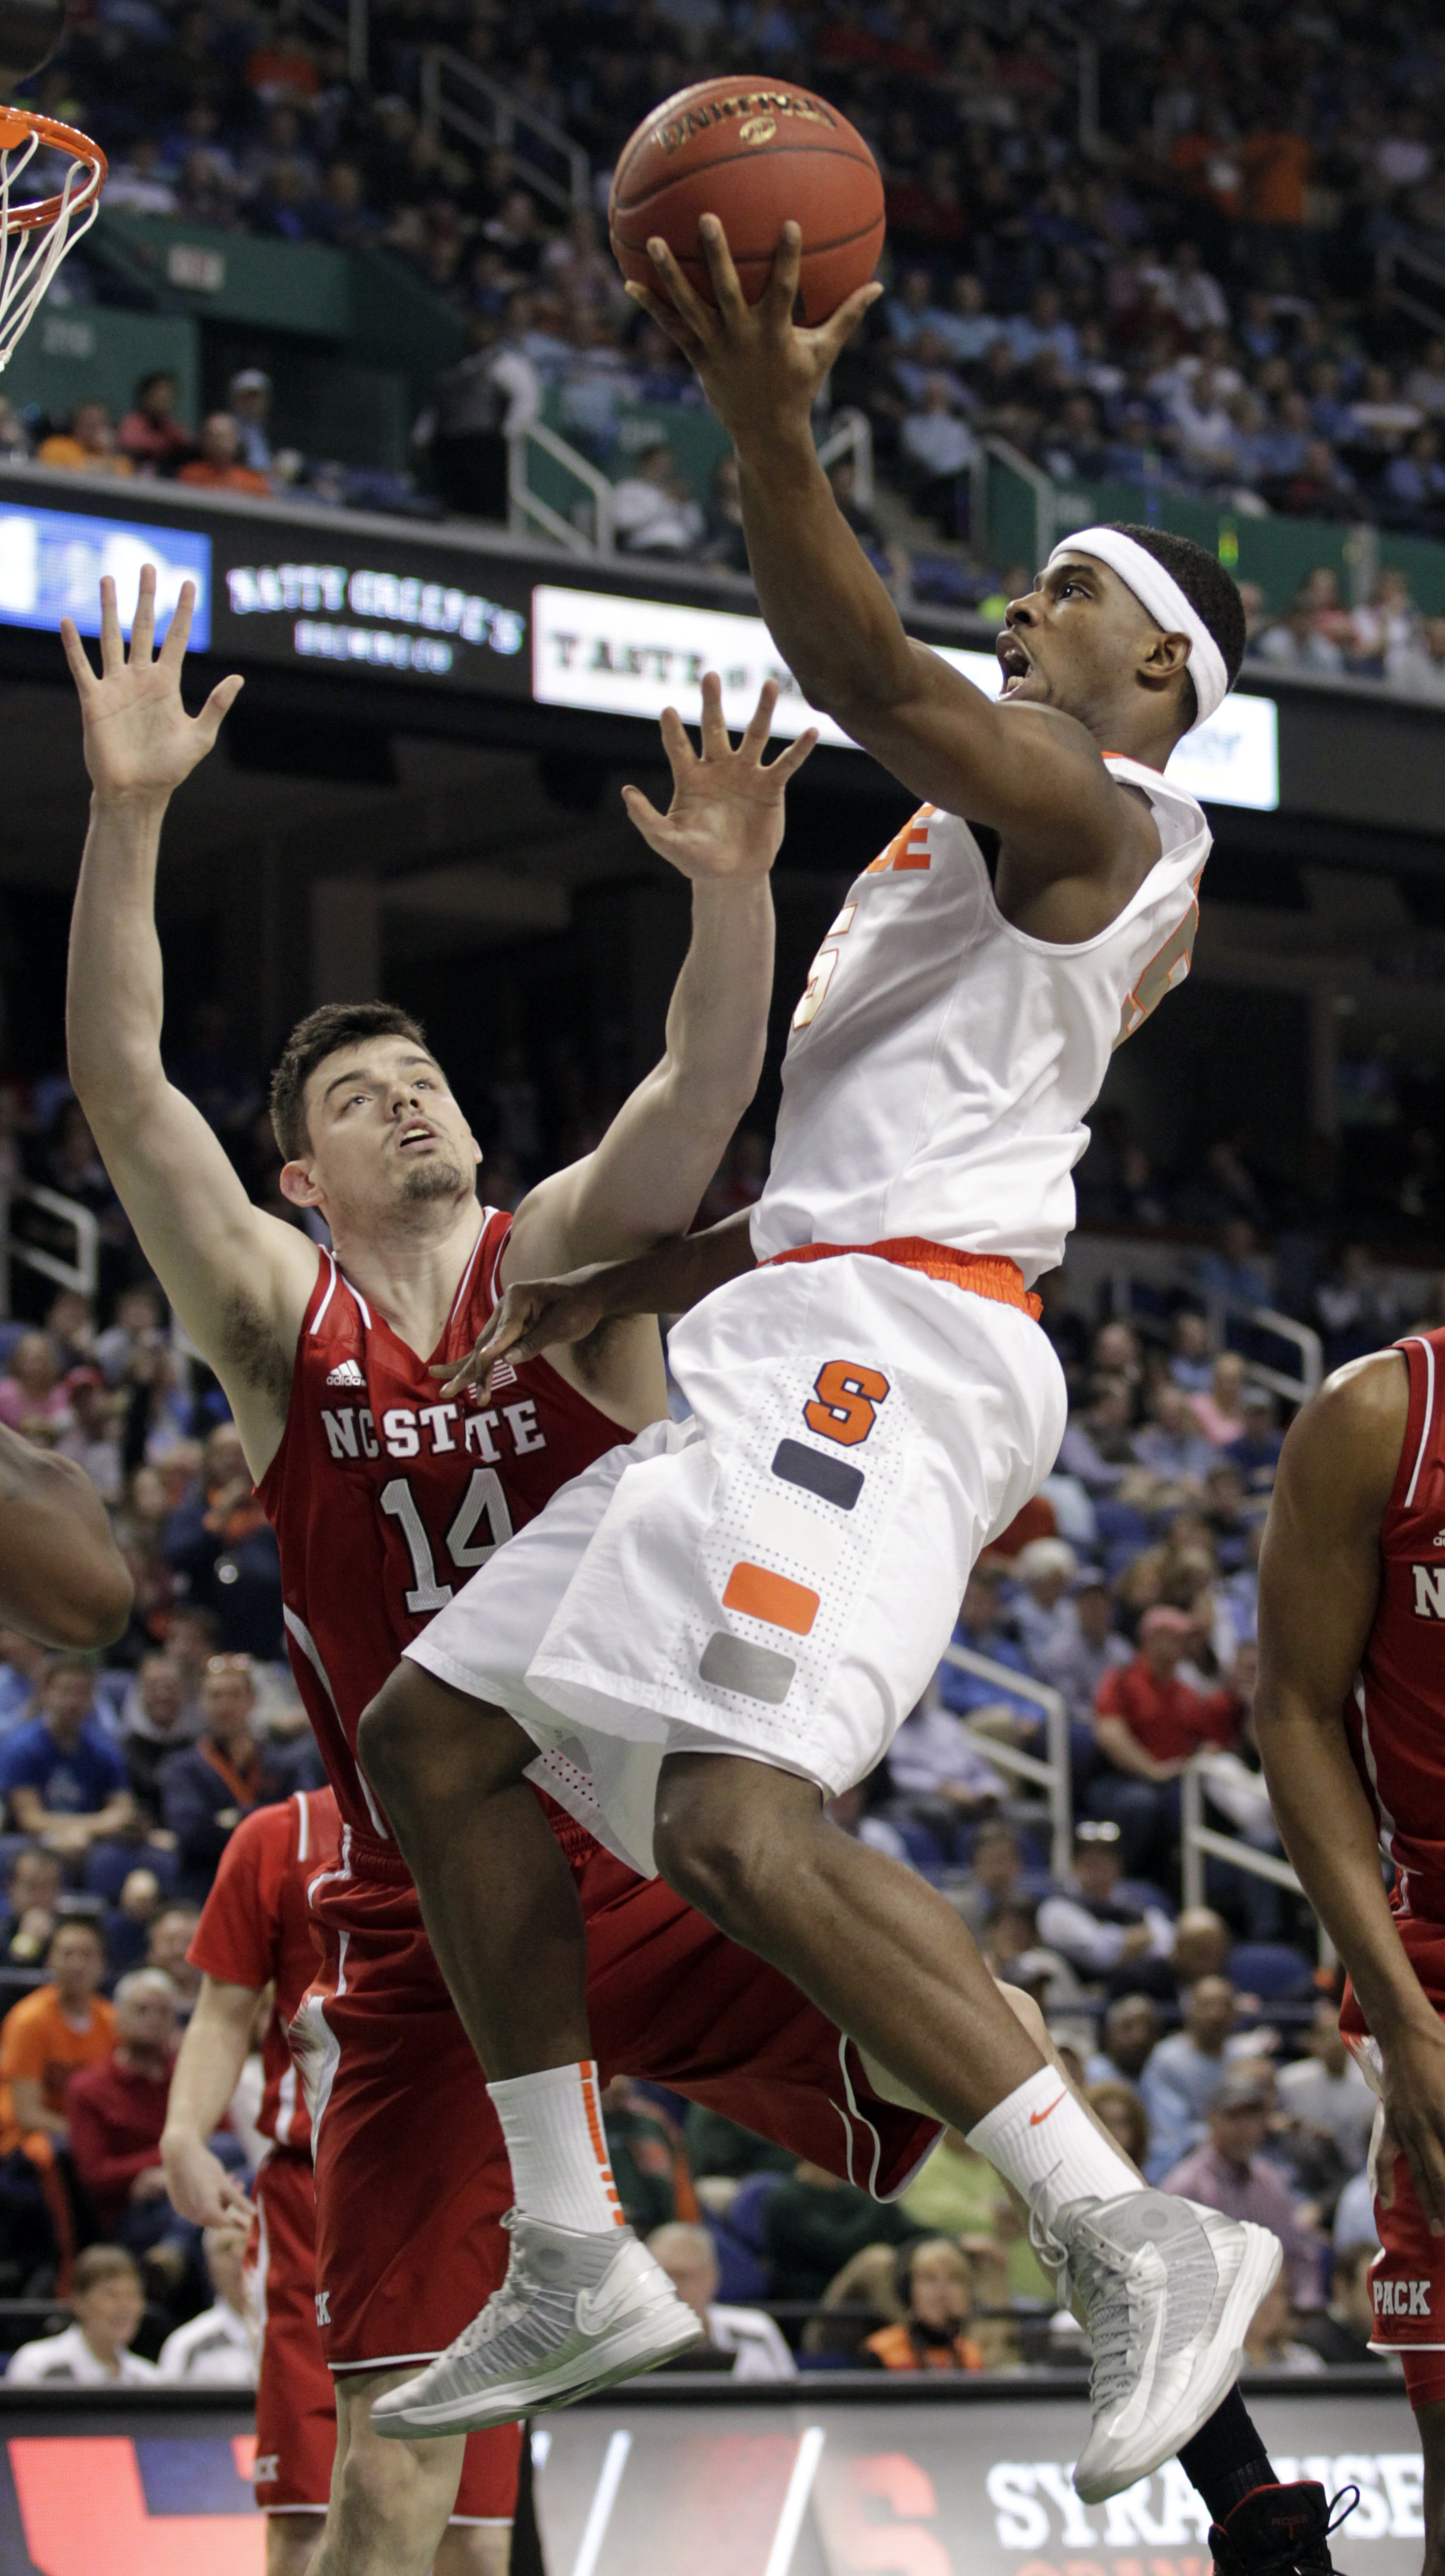 Syracuse gets South's No. 3 seed, to face WMU